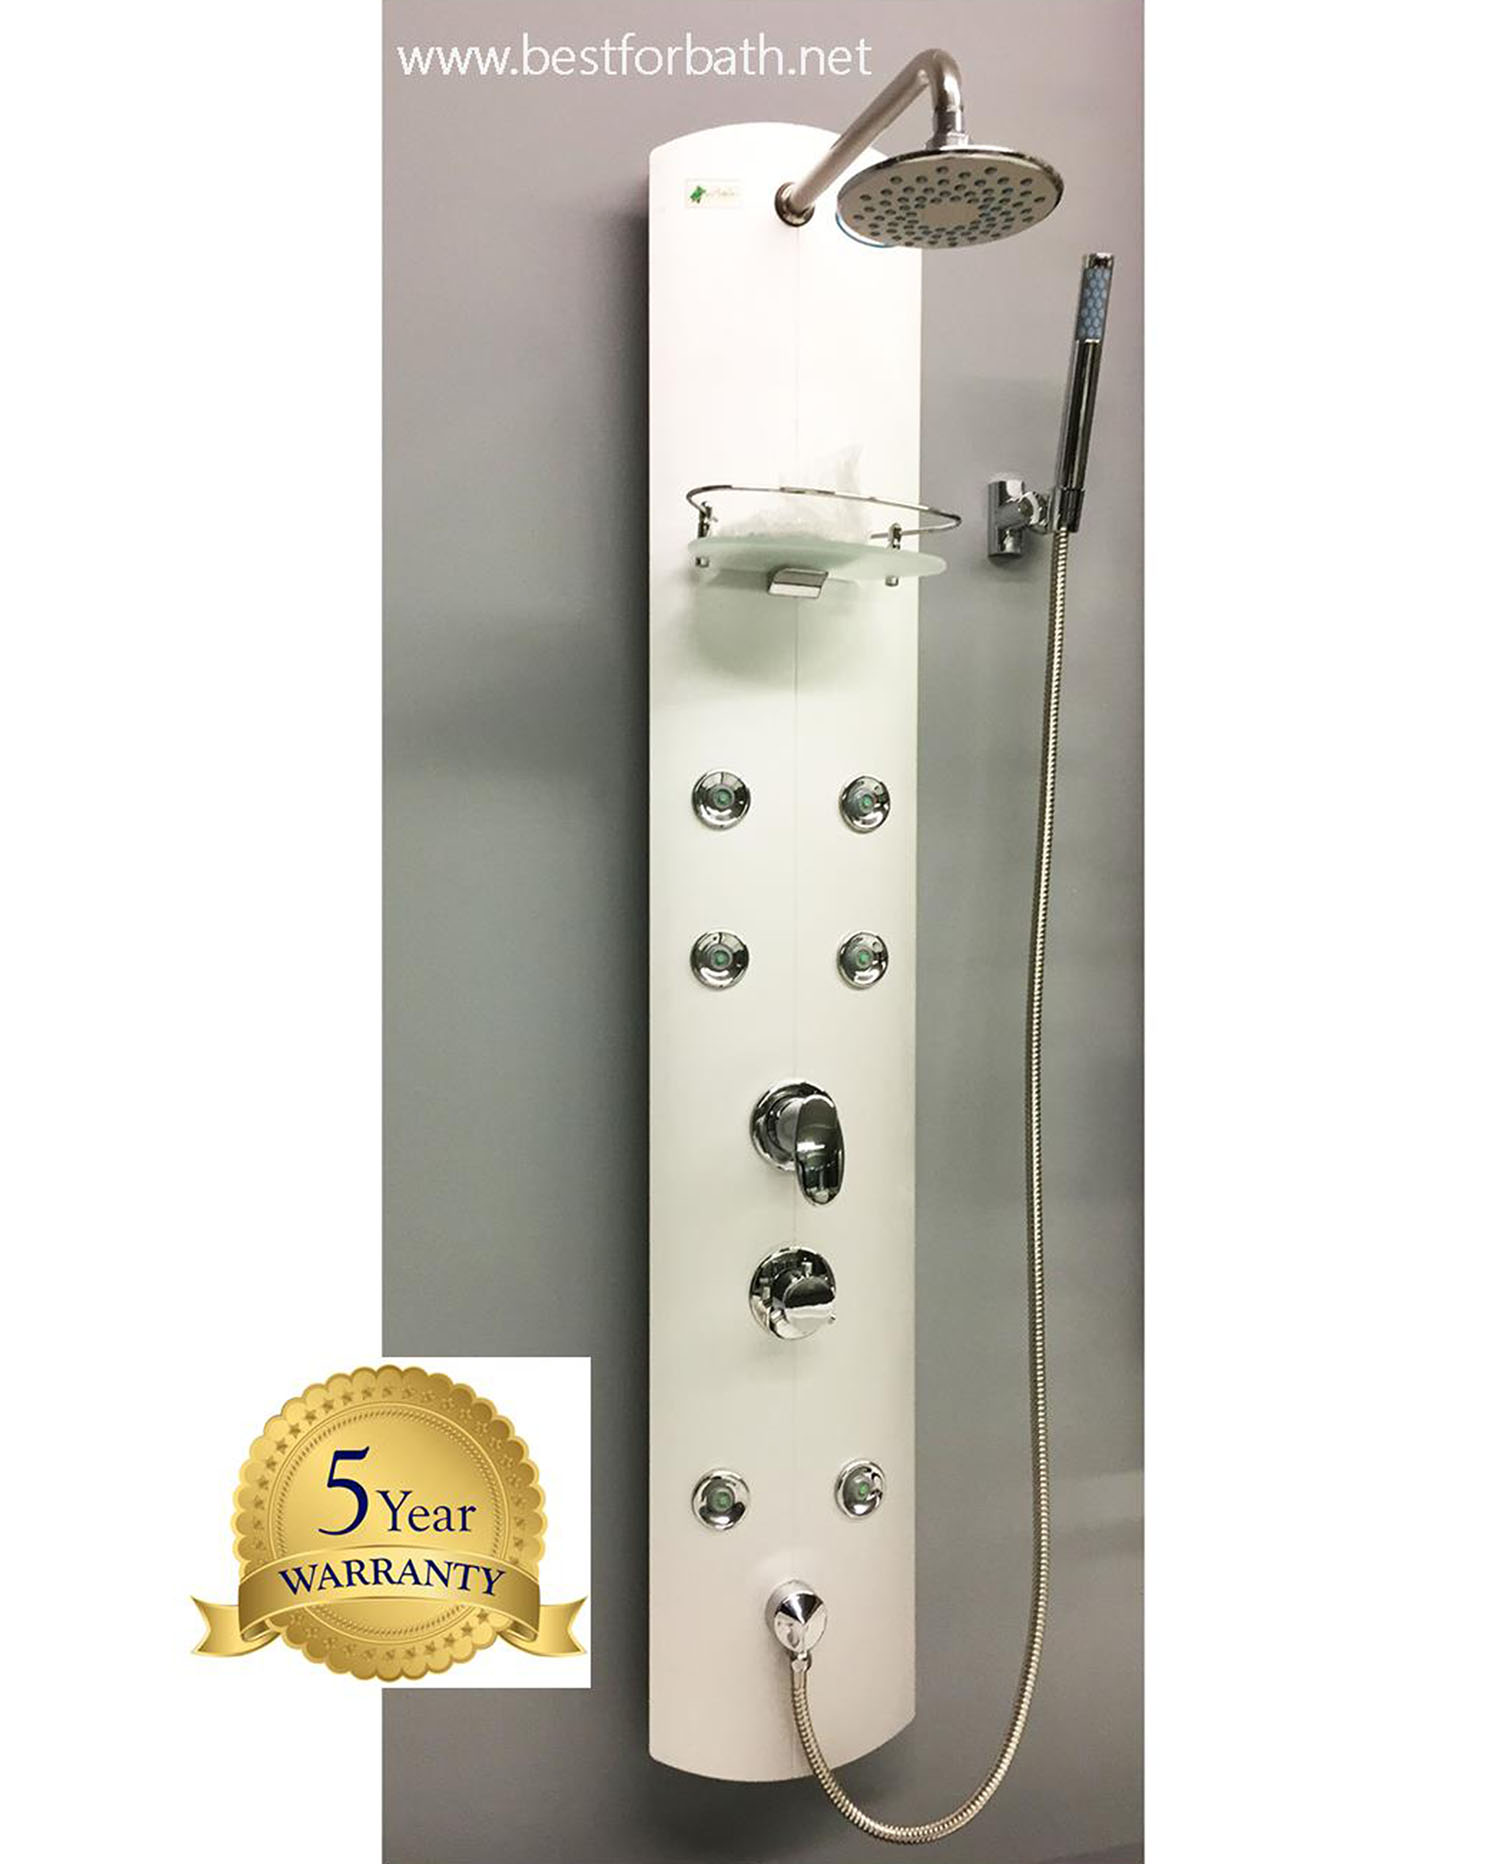 aluminum shower panel model p010 best for bath. Black Bedroom Furniture Sets. Home Design Ideas